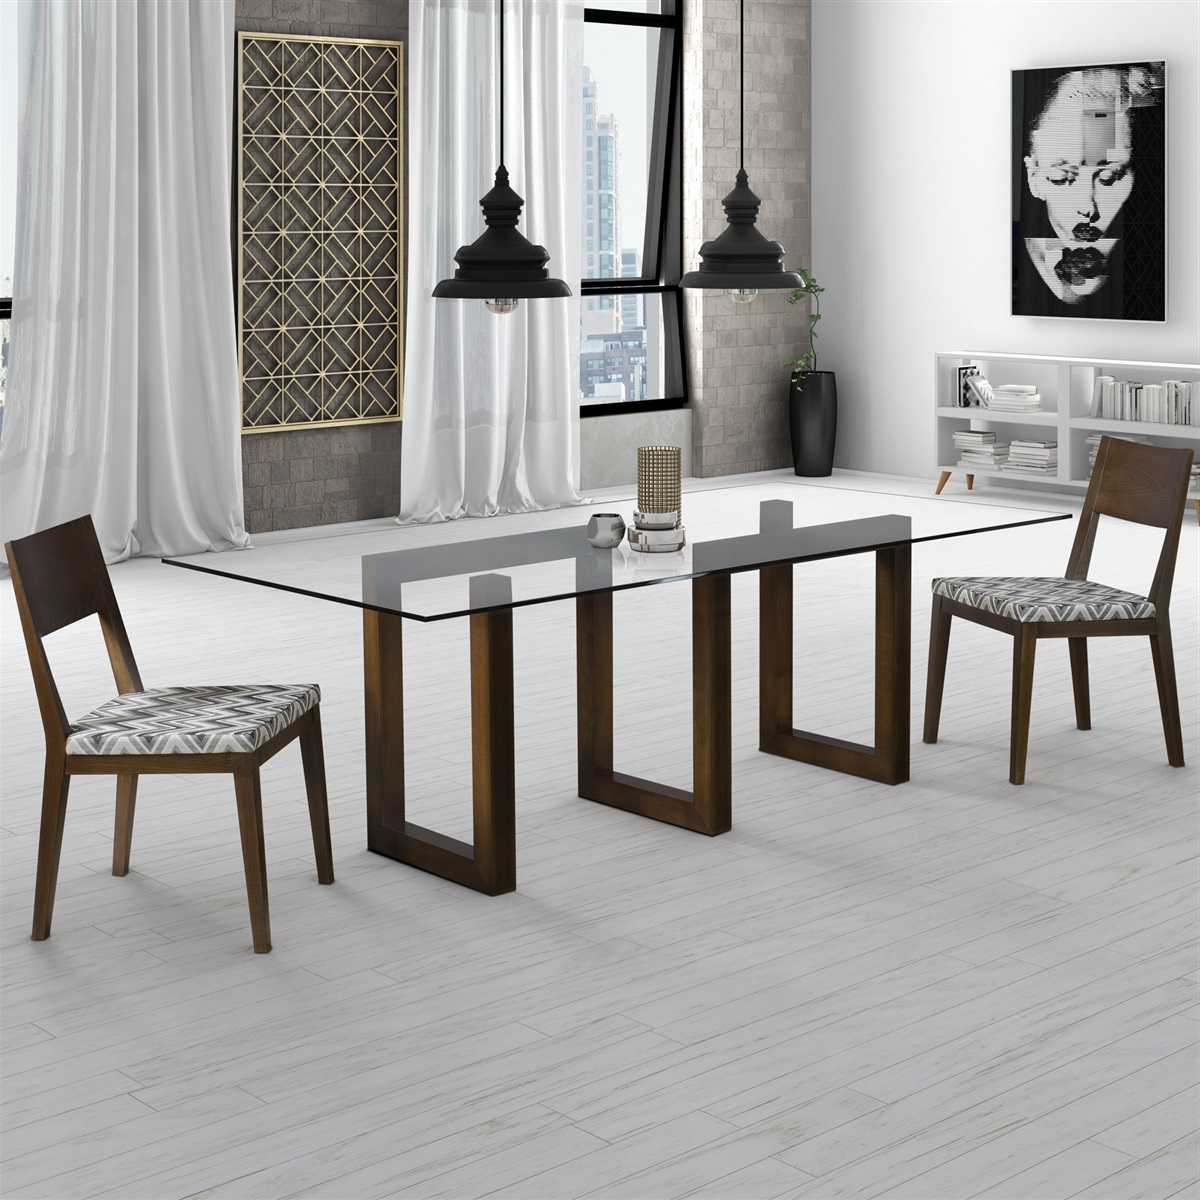 Serpent – Rectangular Glass Top Dining Table Inside Famous Rectangular Glass Top Dining Tables (View 10 of 30)